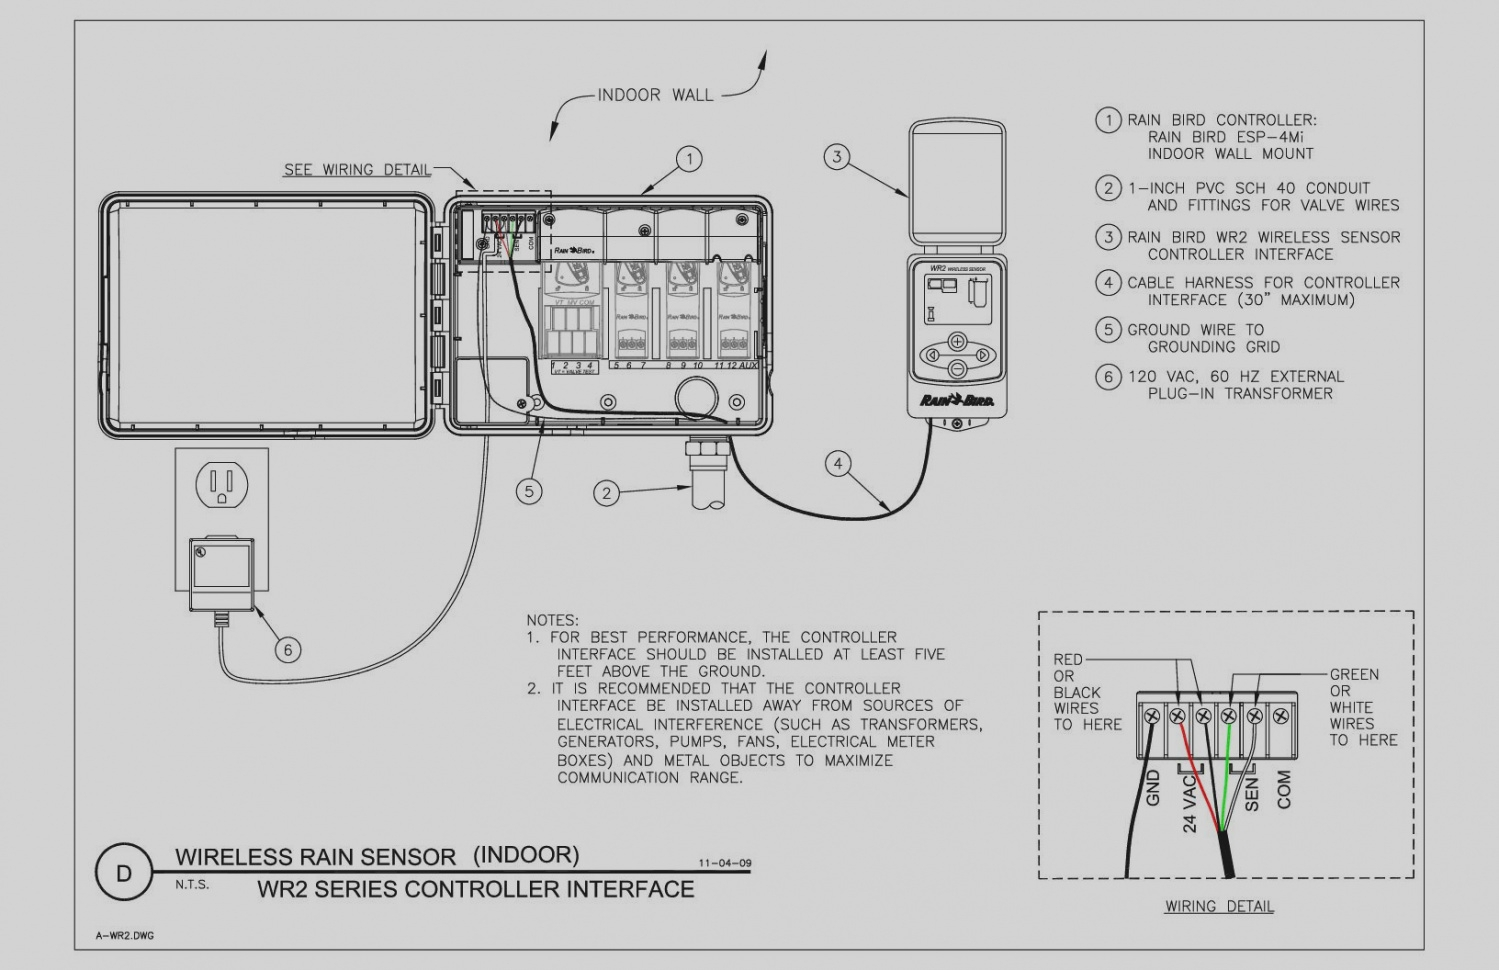 wiring diagram rain bird esp lxme wiring diagrams 24 Rain Bird Electrical System